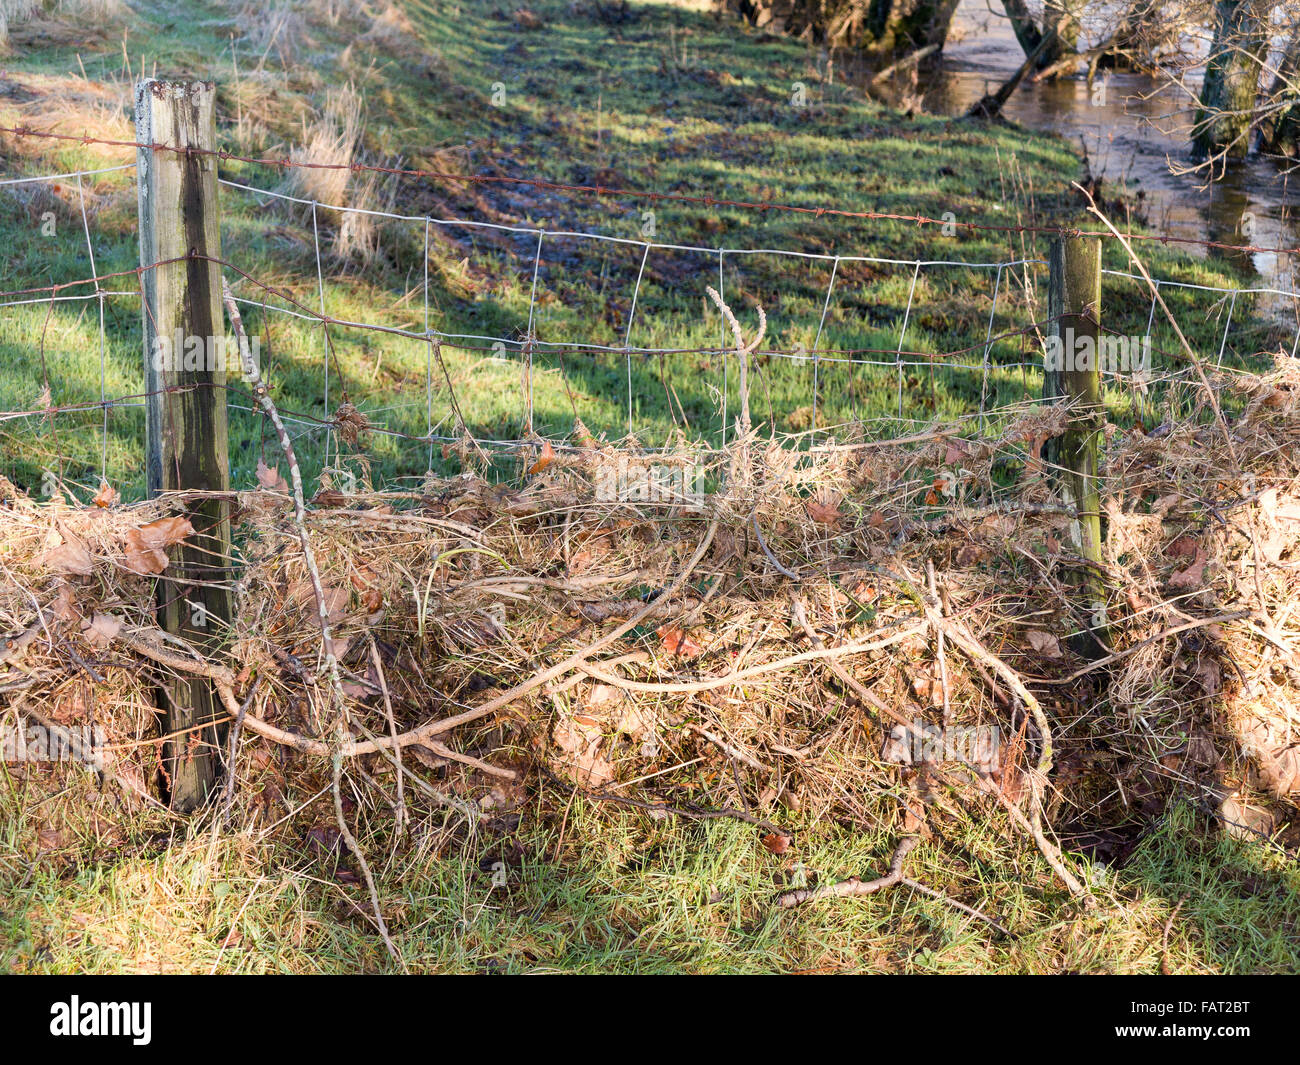 A post and wire stockproof fence containing flood debris on river bank - Stock Image